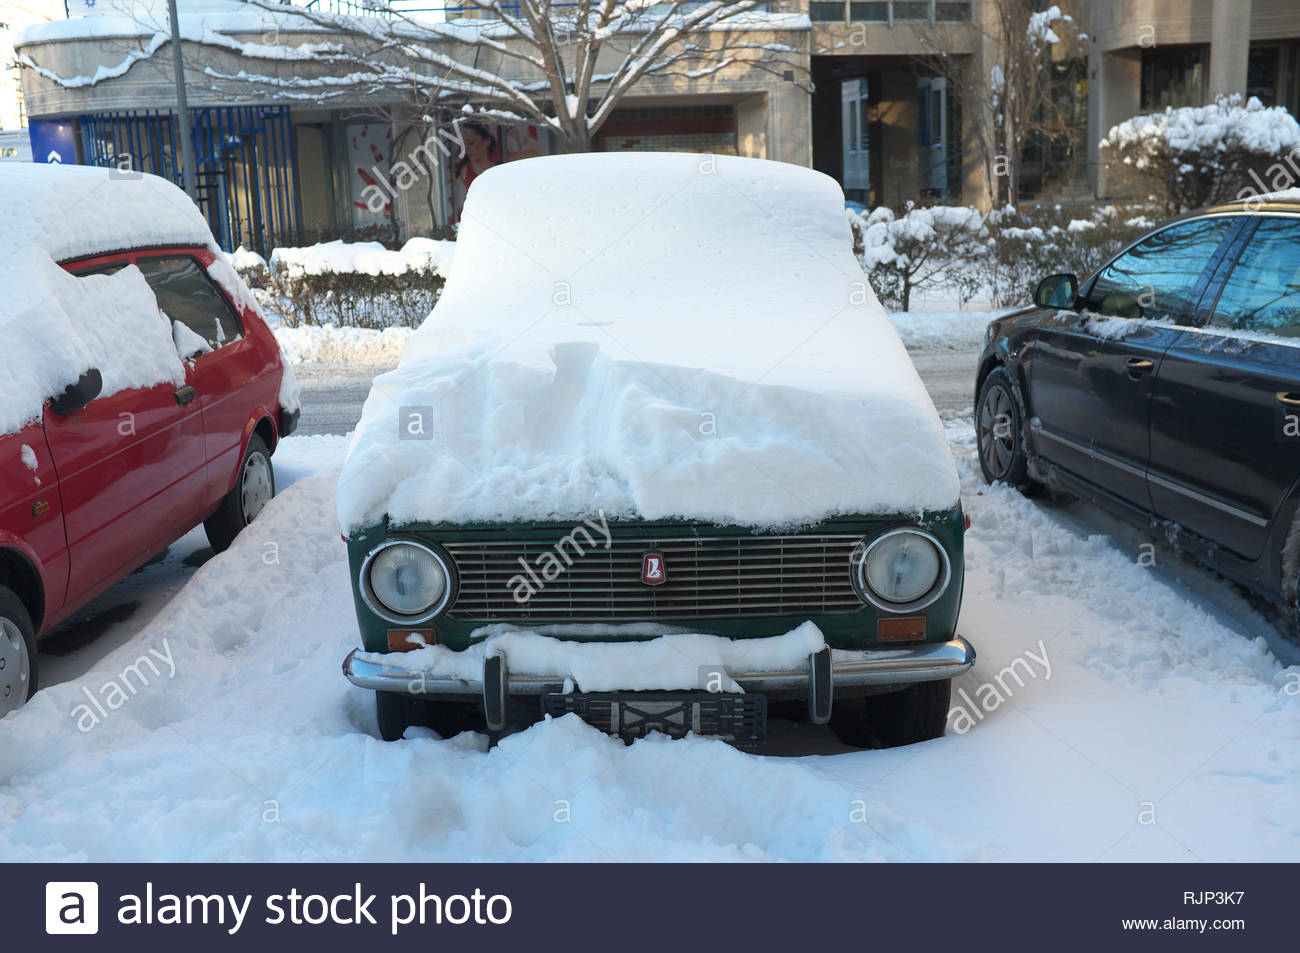 An old Lada car is submerged under recent heavy snowfall in the city of Novi Sad, Vojvodina, Serbia. Stock Photo